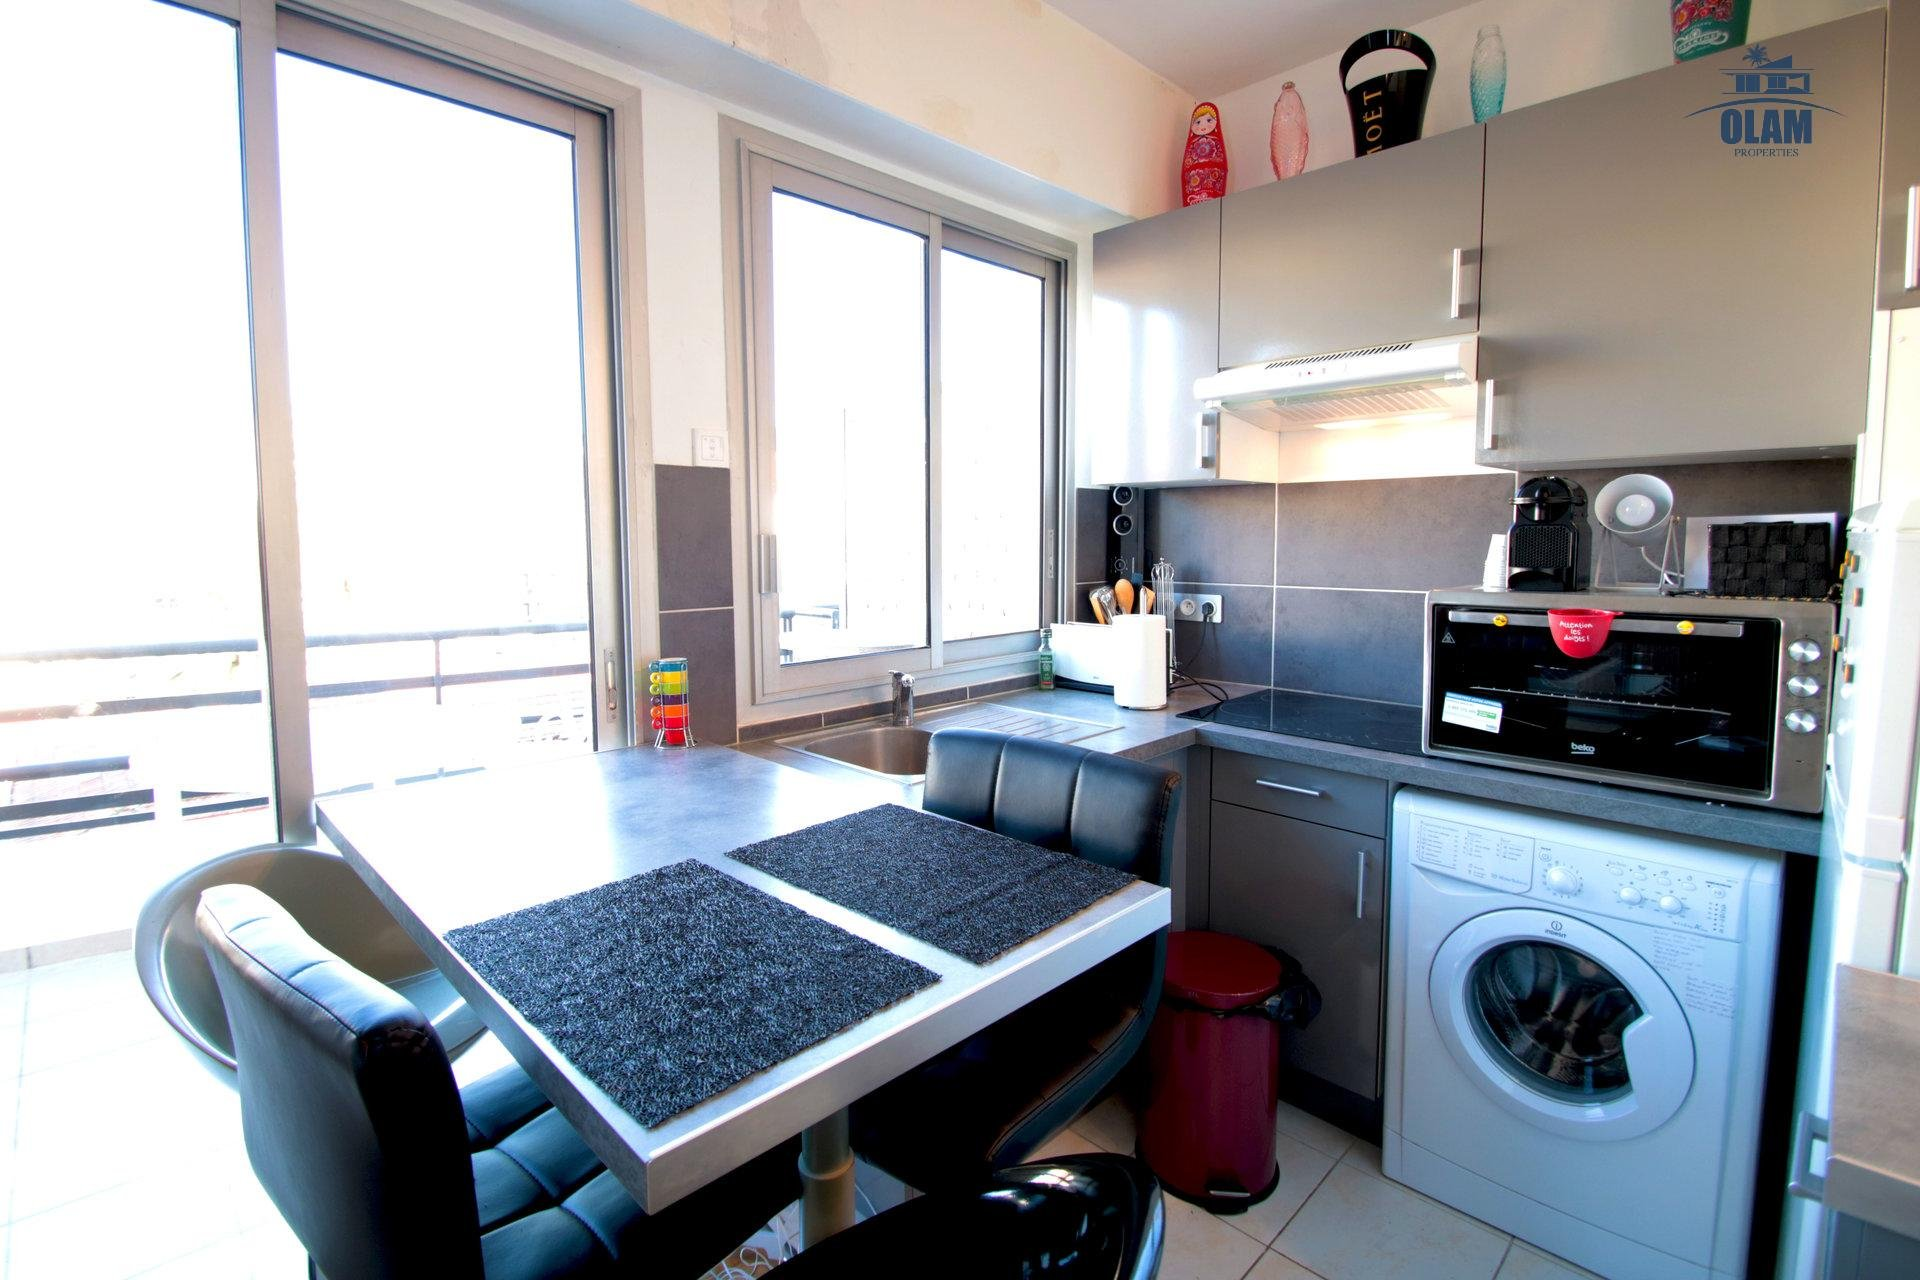 Kitchen, oven, fridge, eating area, Cannes, French Riviera